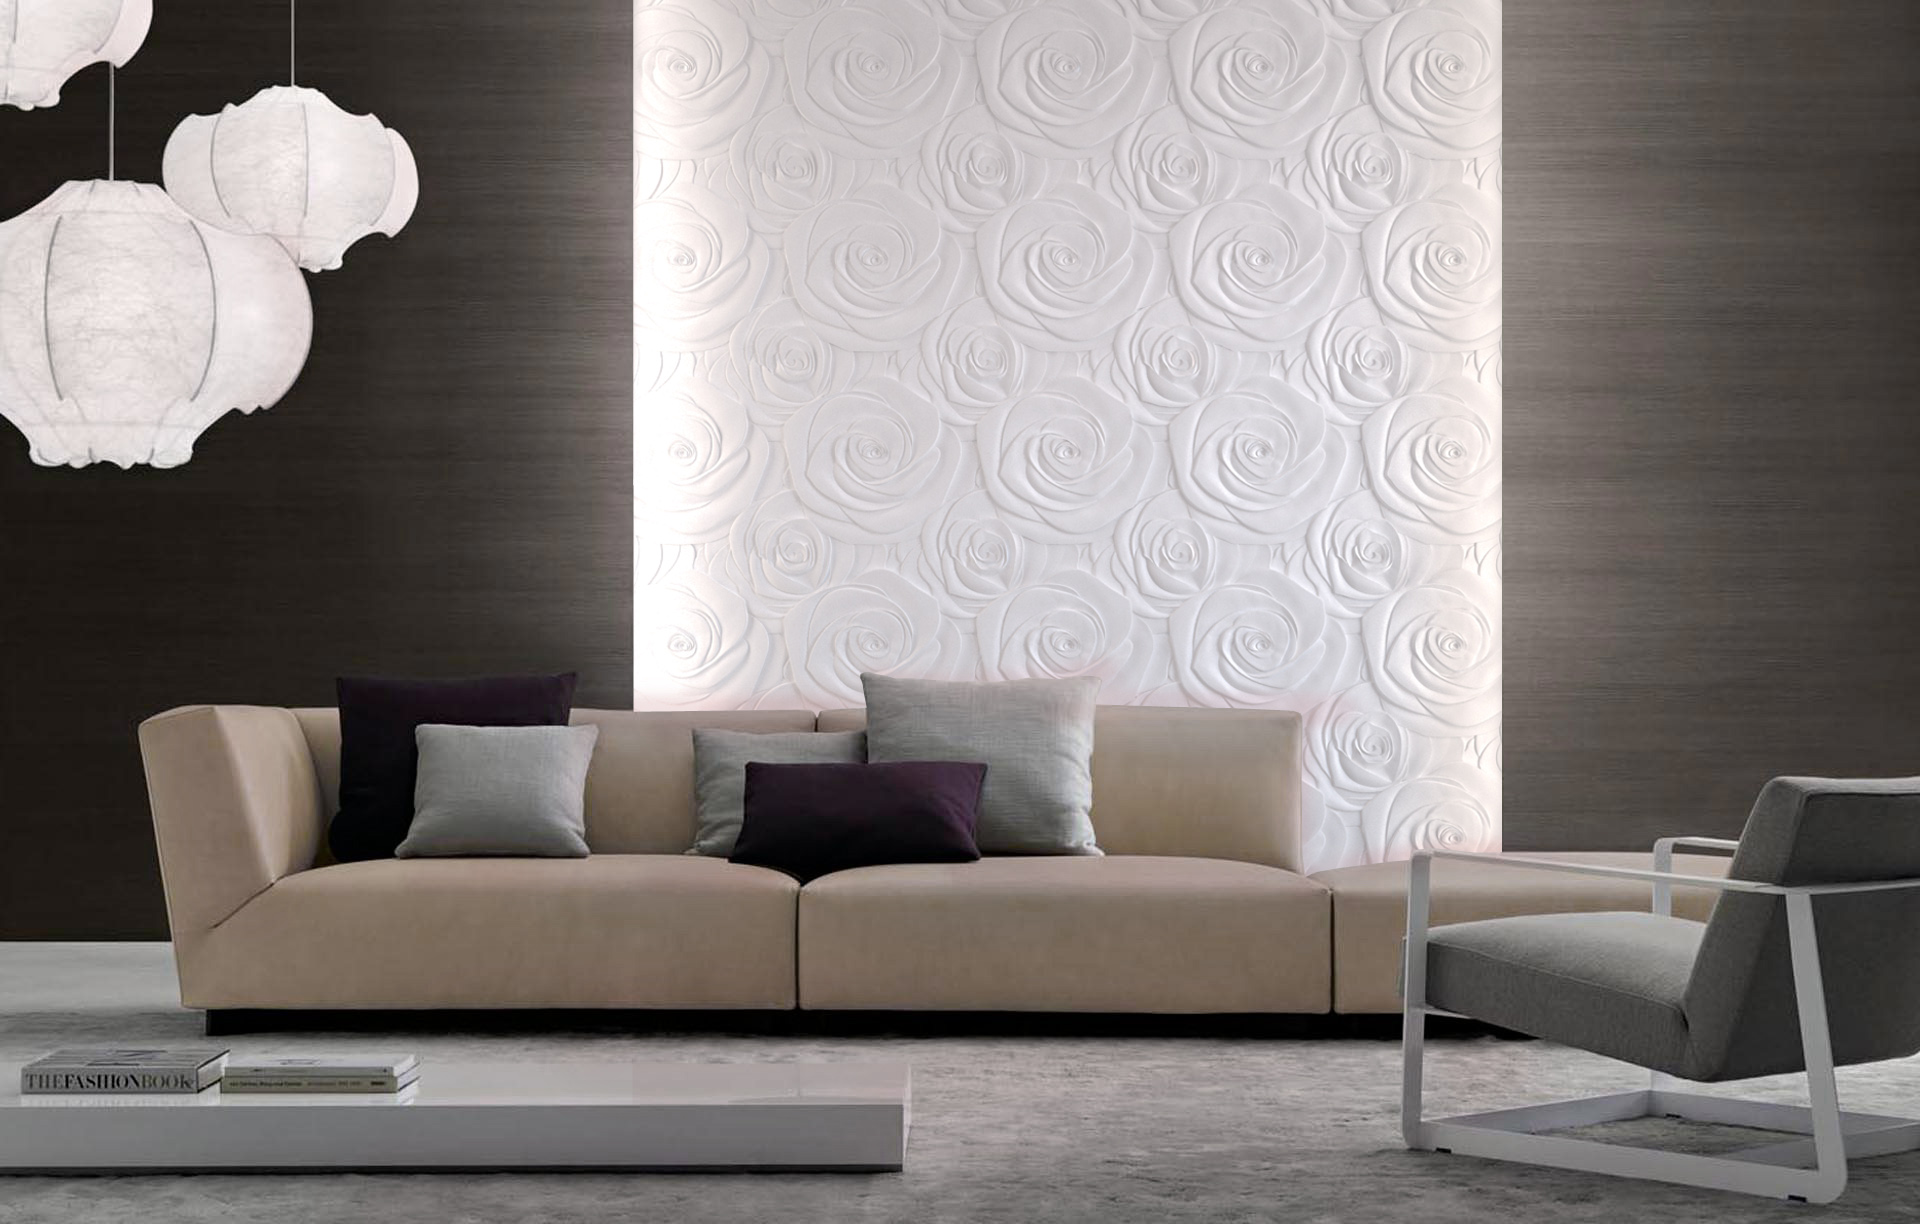 Why choose 3D tiles decorative wall panels?